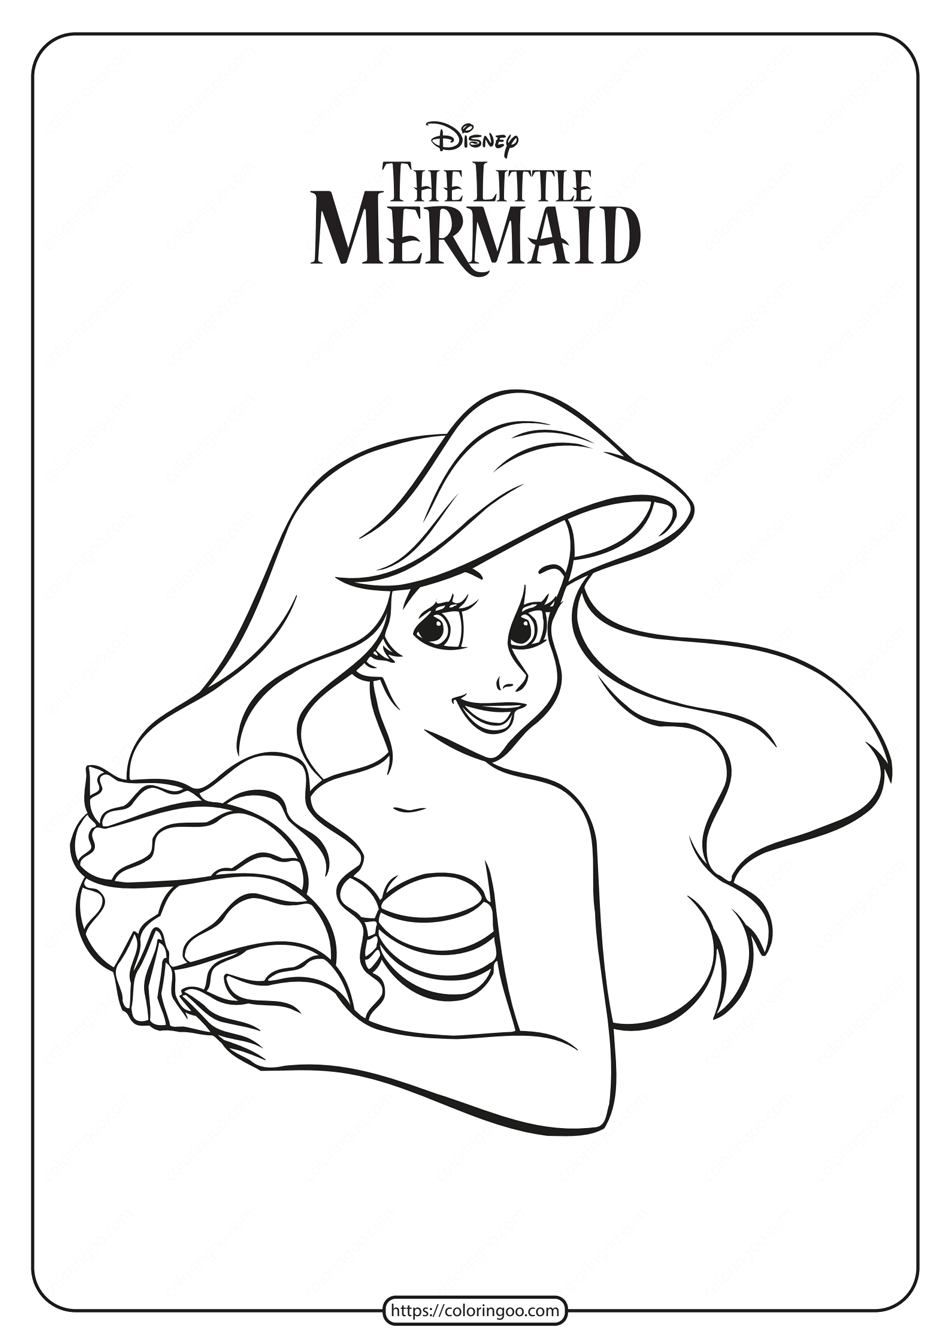 The Little Mermaid Ariel Coloring Pages